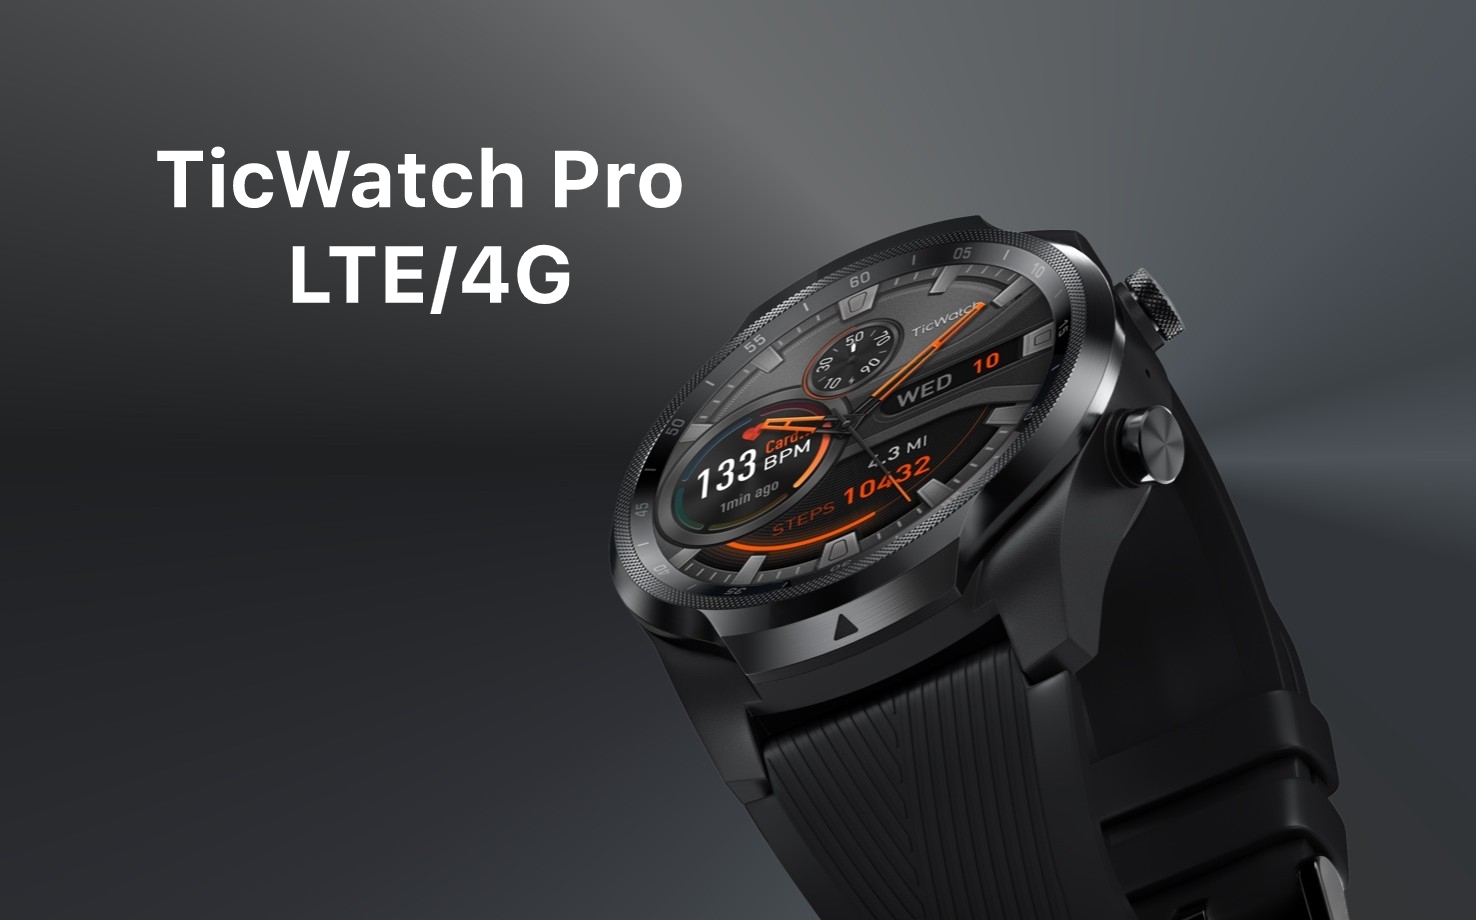 Deal Alert: 25% off the Assistant-enabled TicWatch Pro 4G/LTE